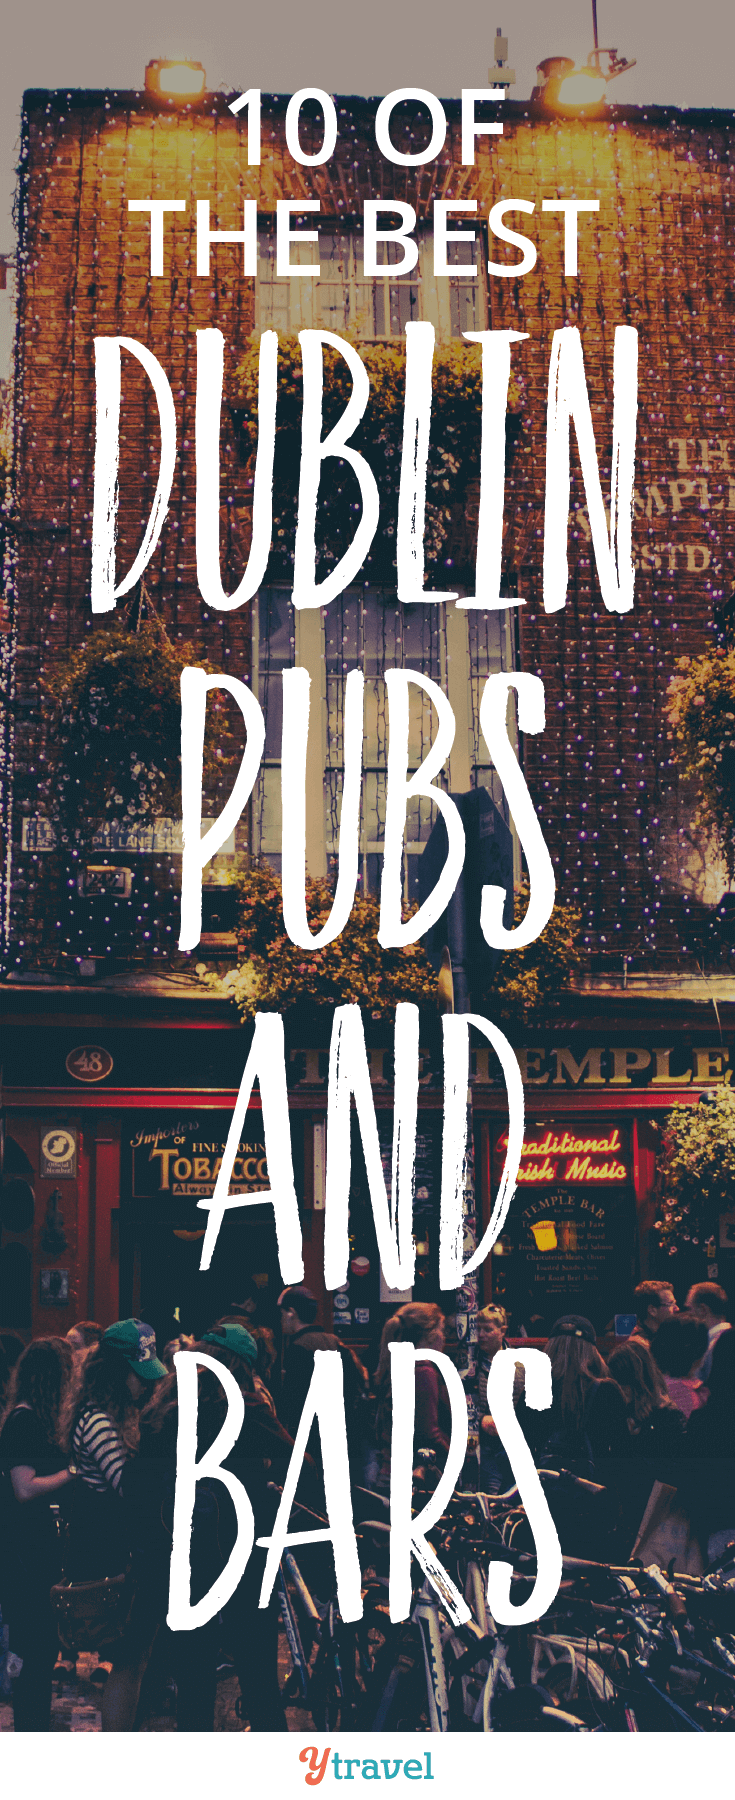 Planning a trip to Dublin soon? Be sure not to miss 10 of the best Dublin bars and pubs.